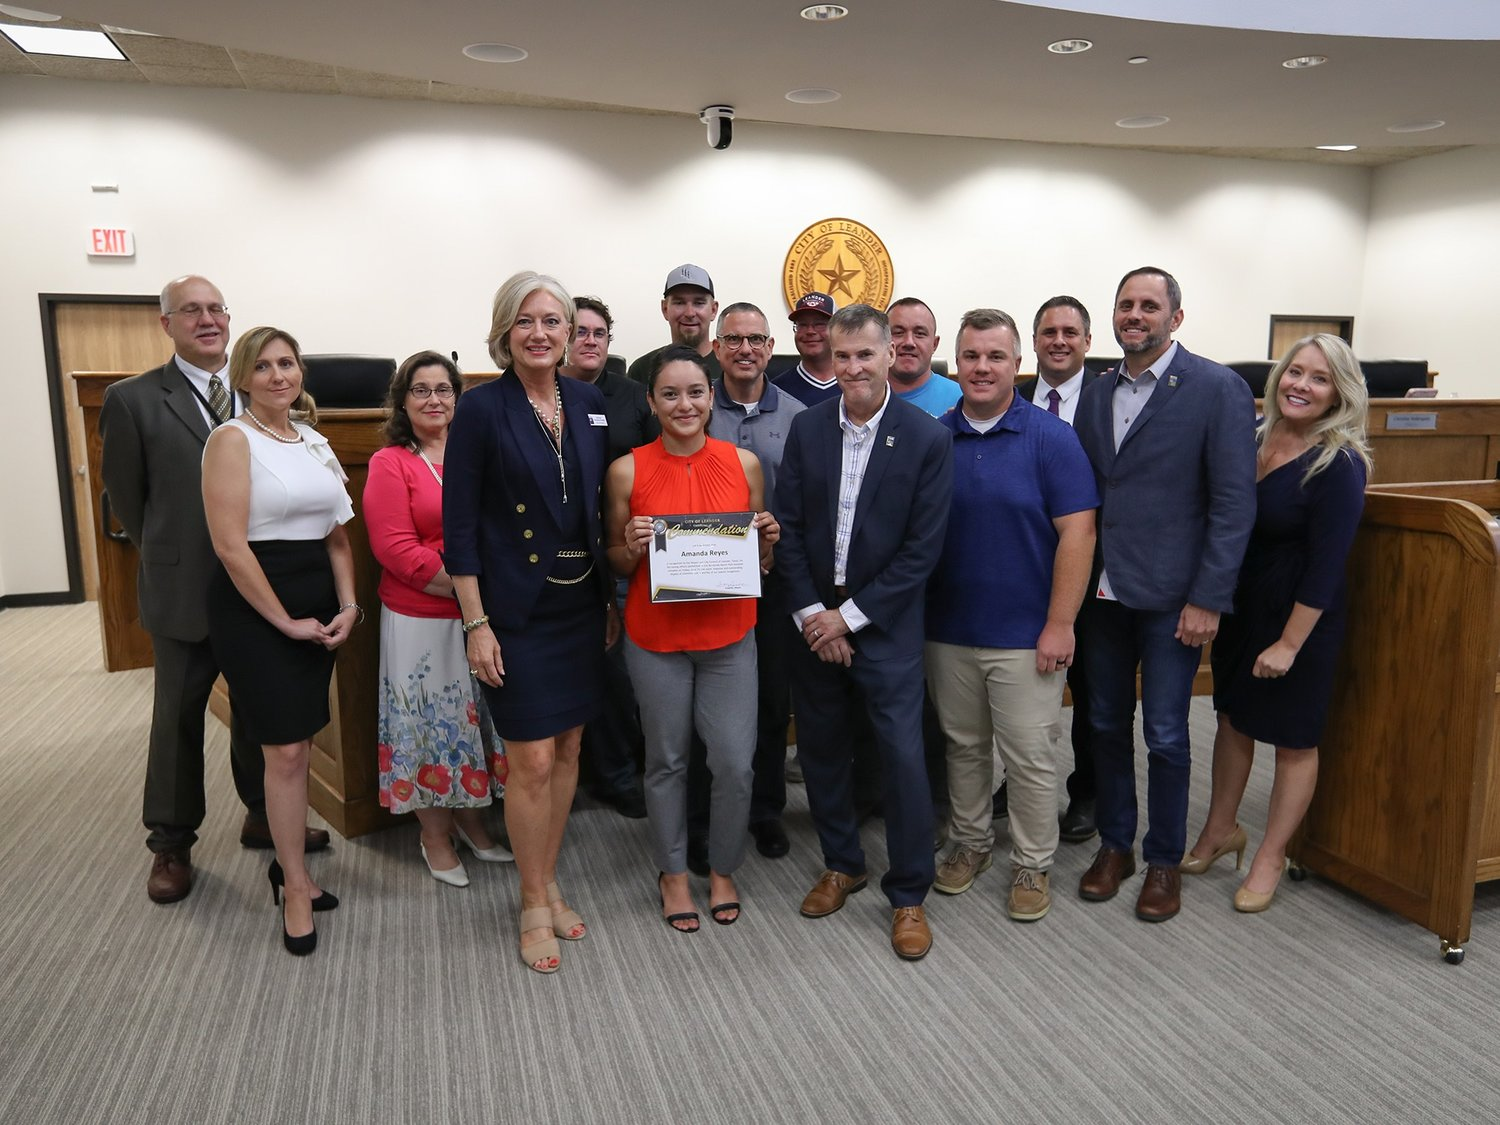 The Leander City Council honored City of Austin Firefighter Amanda Reyes alongside area residents Chase Howard, Daniel Parker, Darrell Brown, Jason Belk, and Lewis Ekle for helping to save a young woman's life on June 14 at Benbrook Ranch Park.